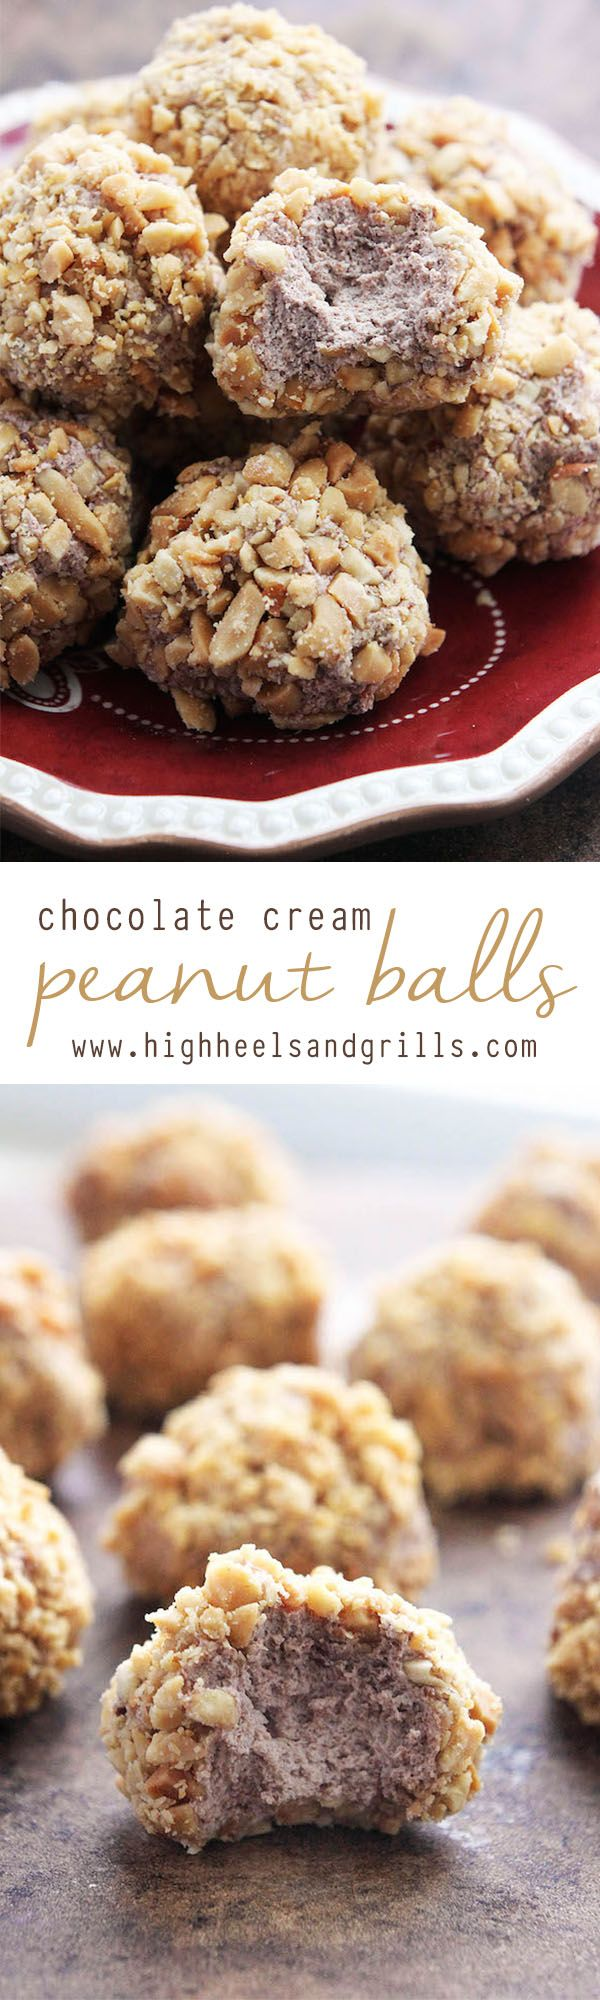 Chocolate Cream Peanut Balls - These are the ultimate Thanksgiving and Christmas dessert! I haven't met a person that doesn't like them!